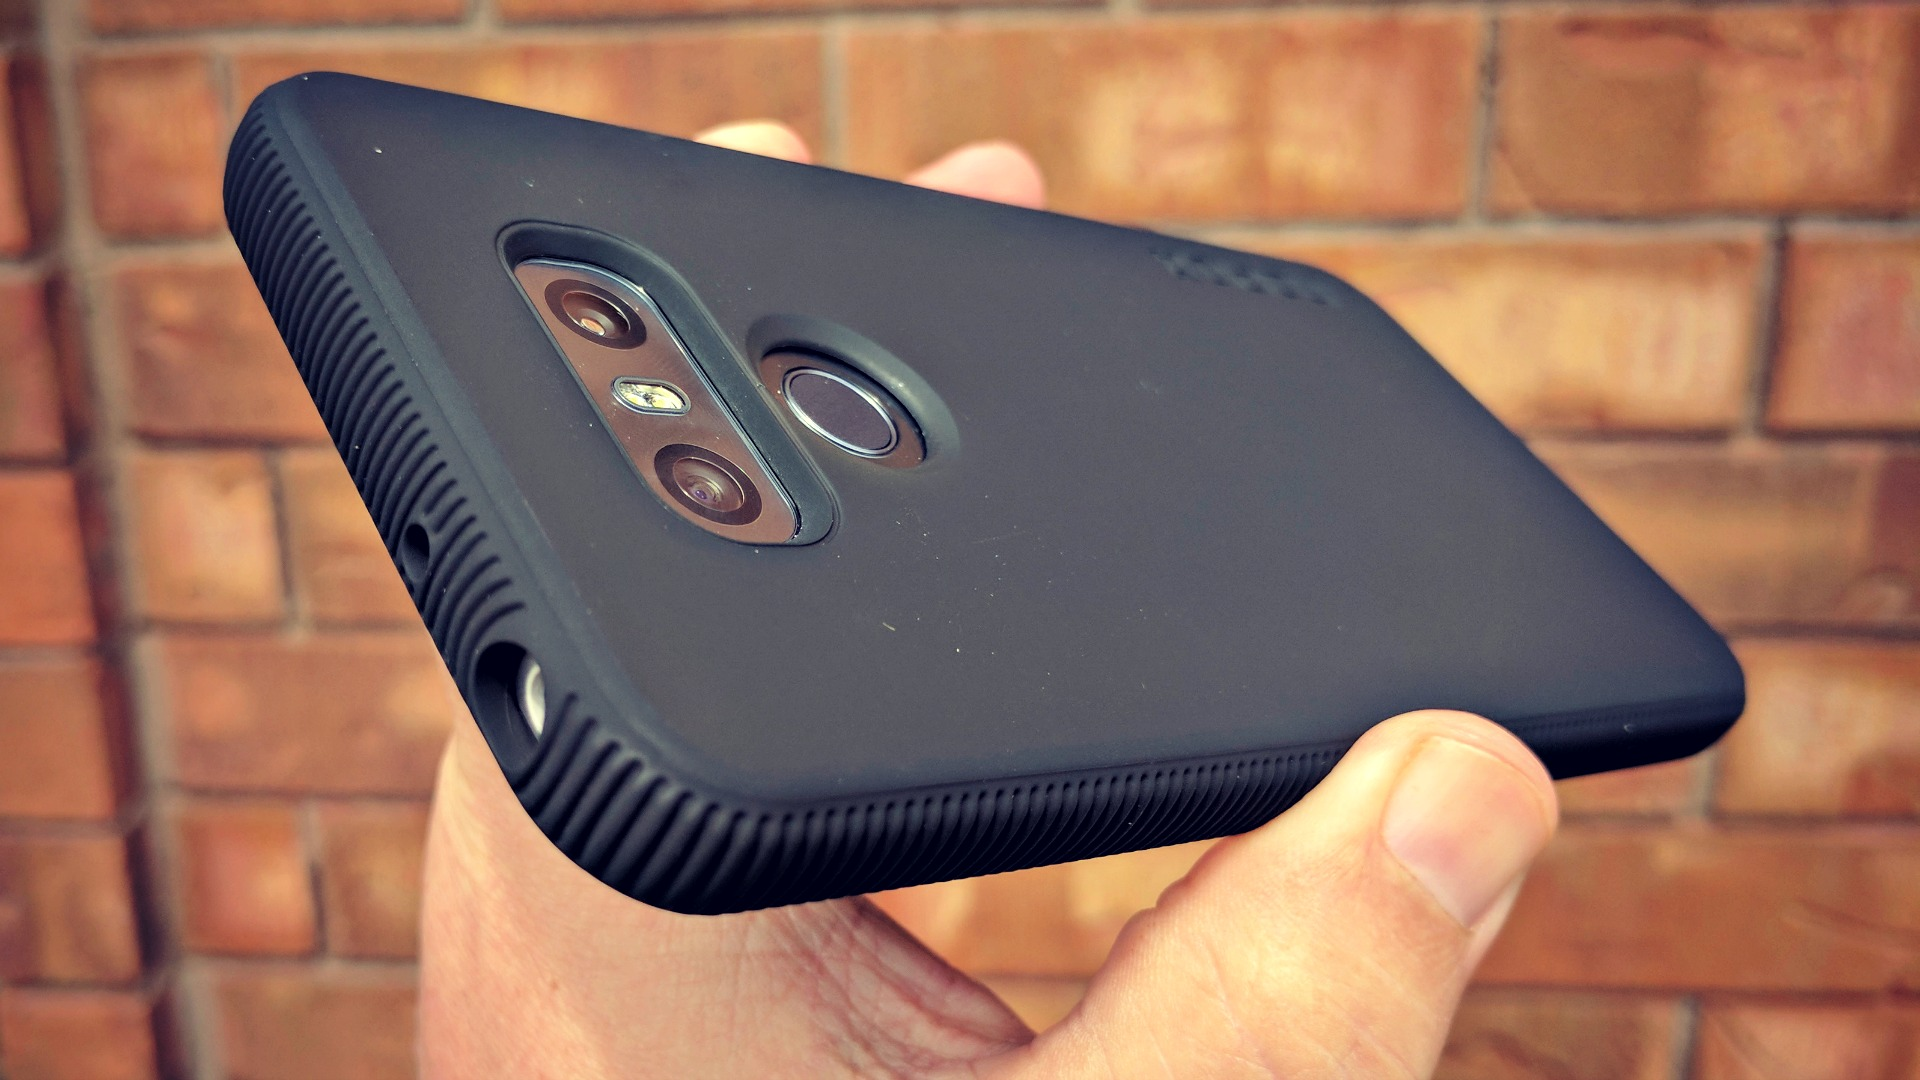 separation shoes 5feac 5de7d Gear Up: Incipio cases for LG G6 and other flagships